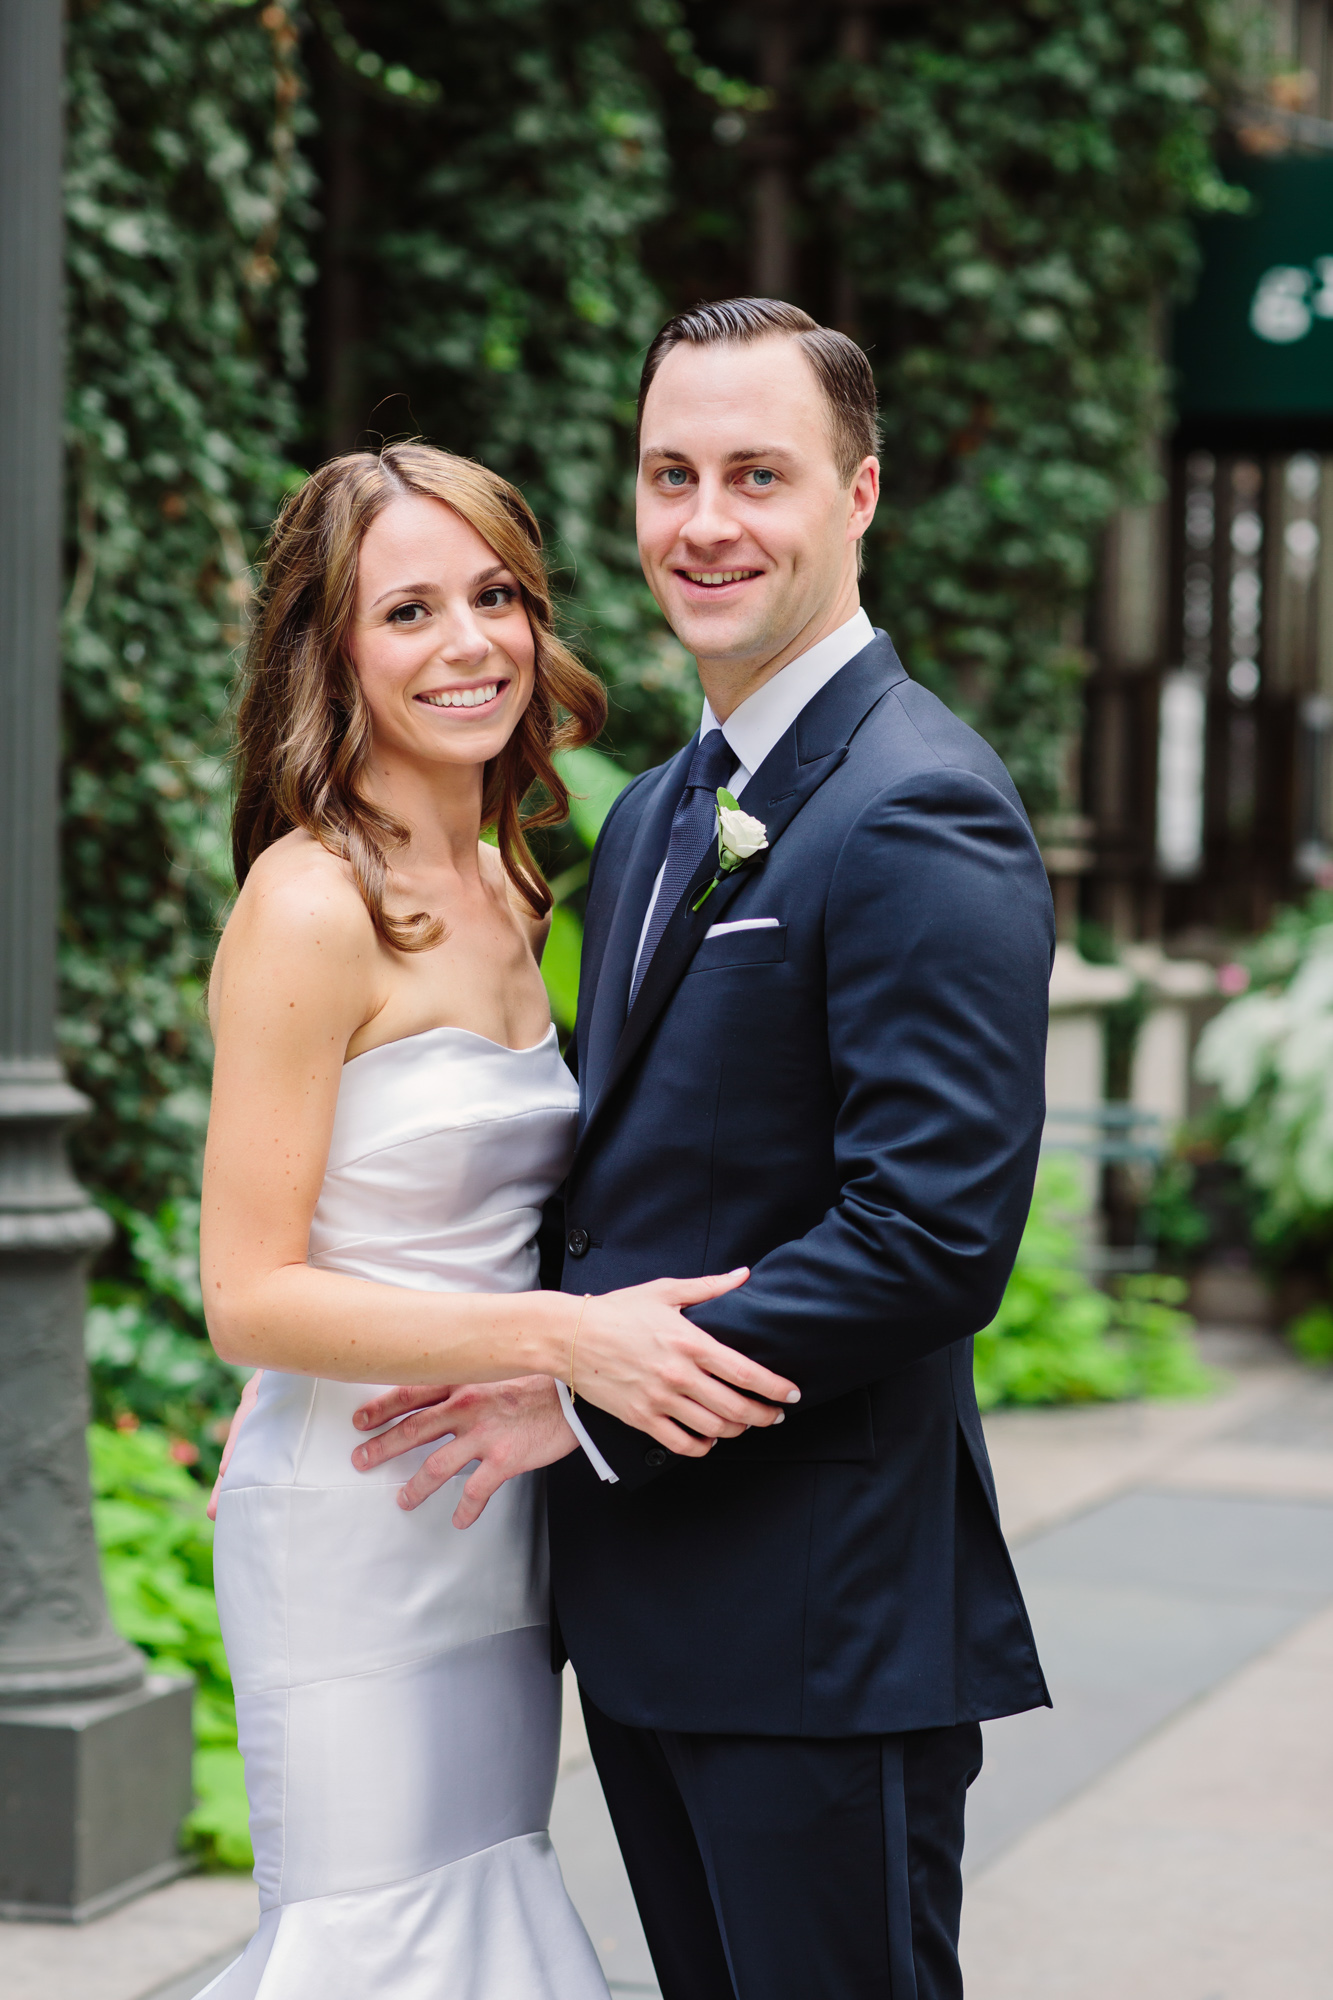 25_Ali_Lloyd_Bryant_Park_Grill_Wedding_NYC_Tanya_Salazar_Photography_165.jpg